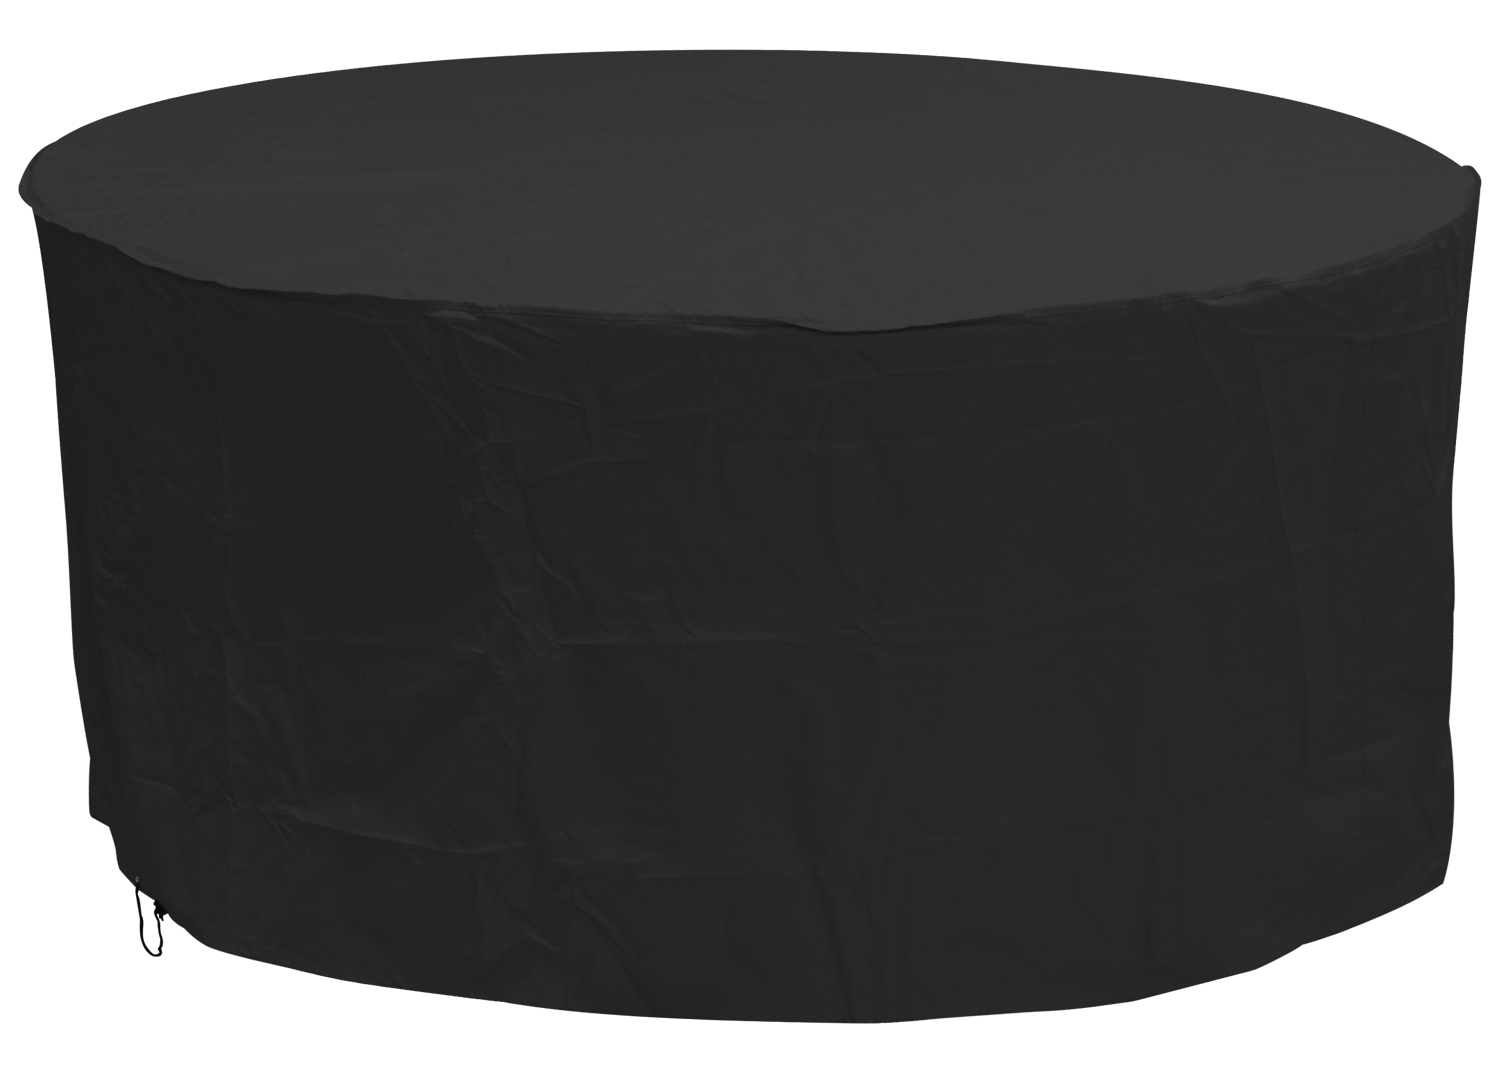 Oxbridge large round patio set cover covers outdoor value for Oxbridge outdoor furniture covers